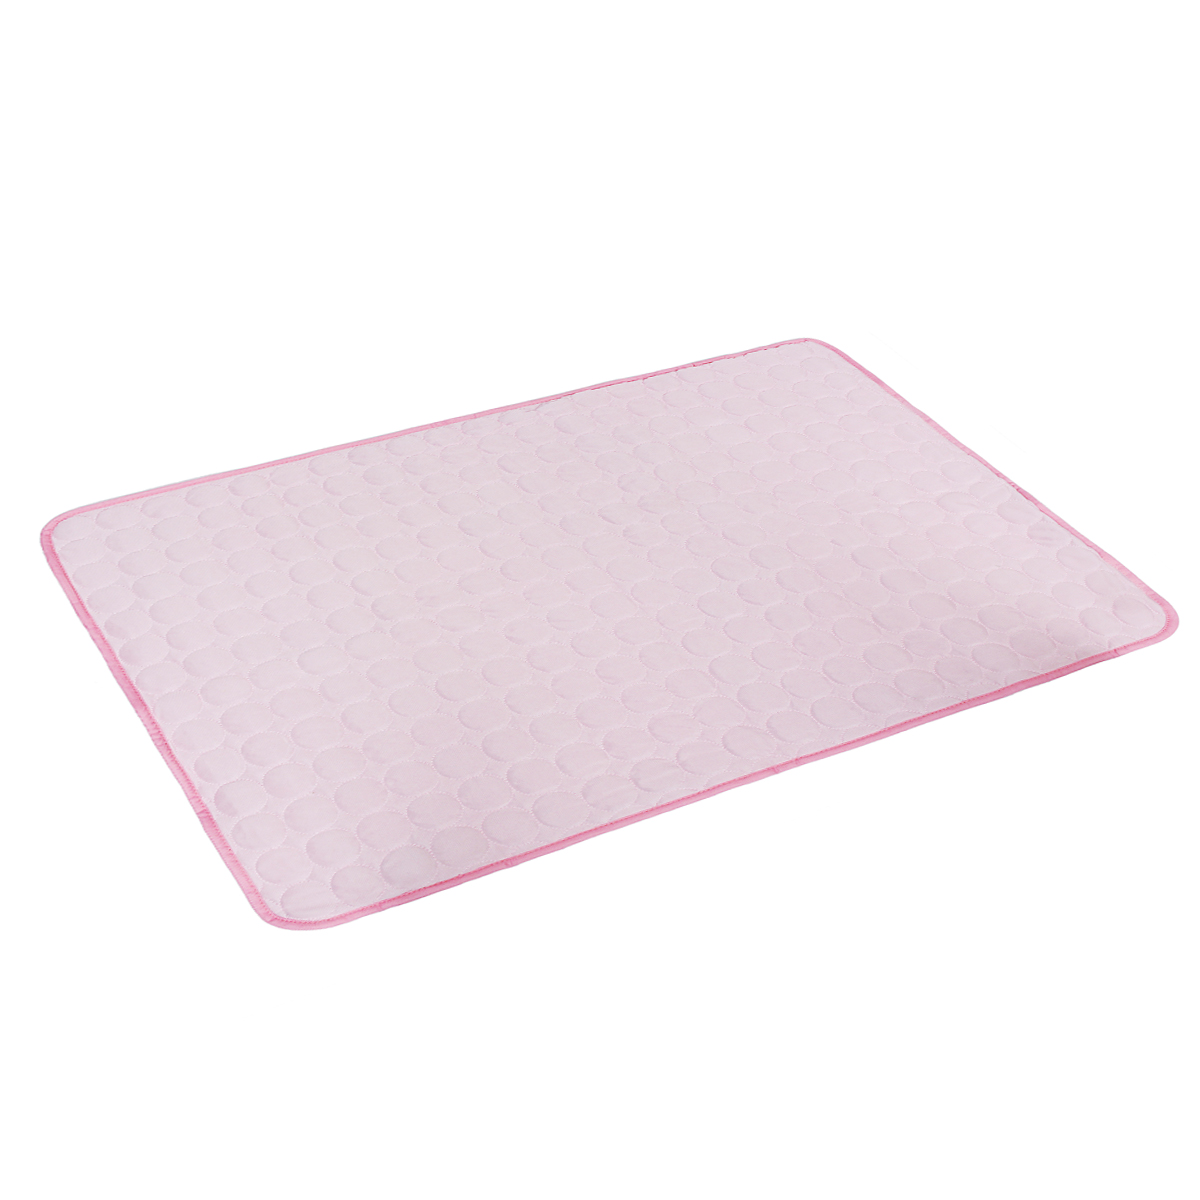 Pink Pet Summer Cooling Mat Cold Gel Pad Comfortable Cushion For Dog Cat Puppy Decorations